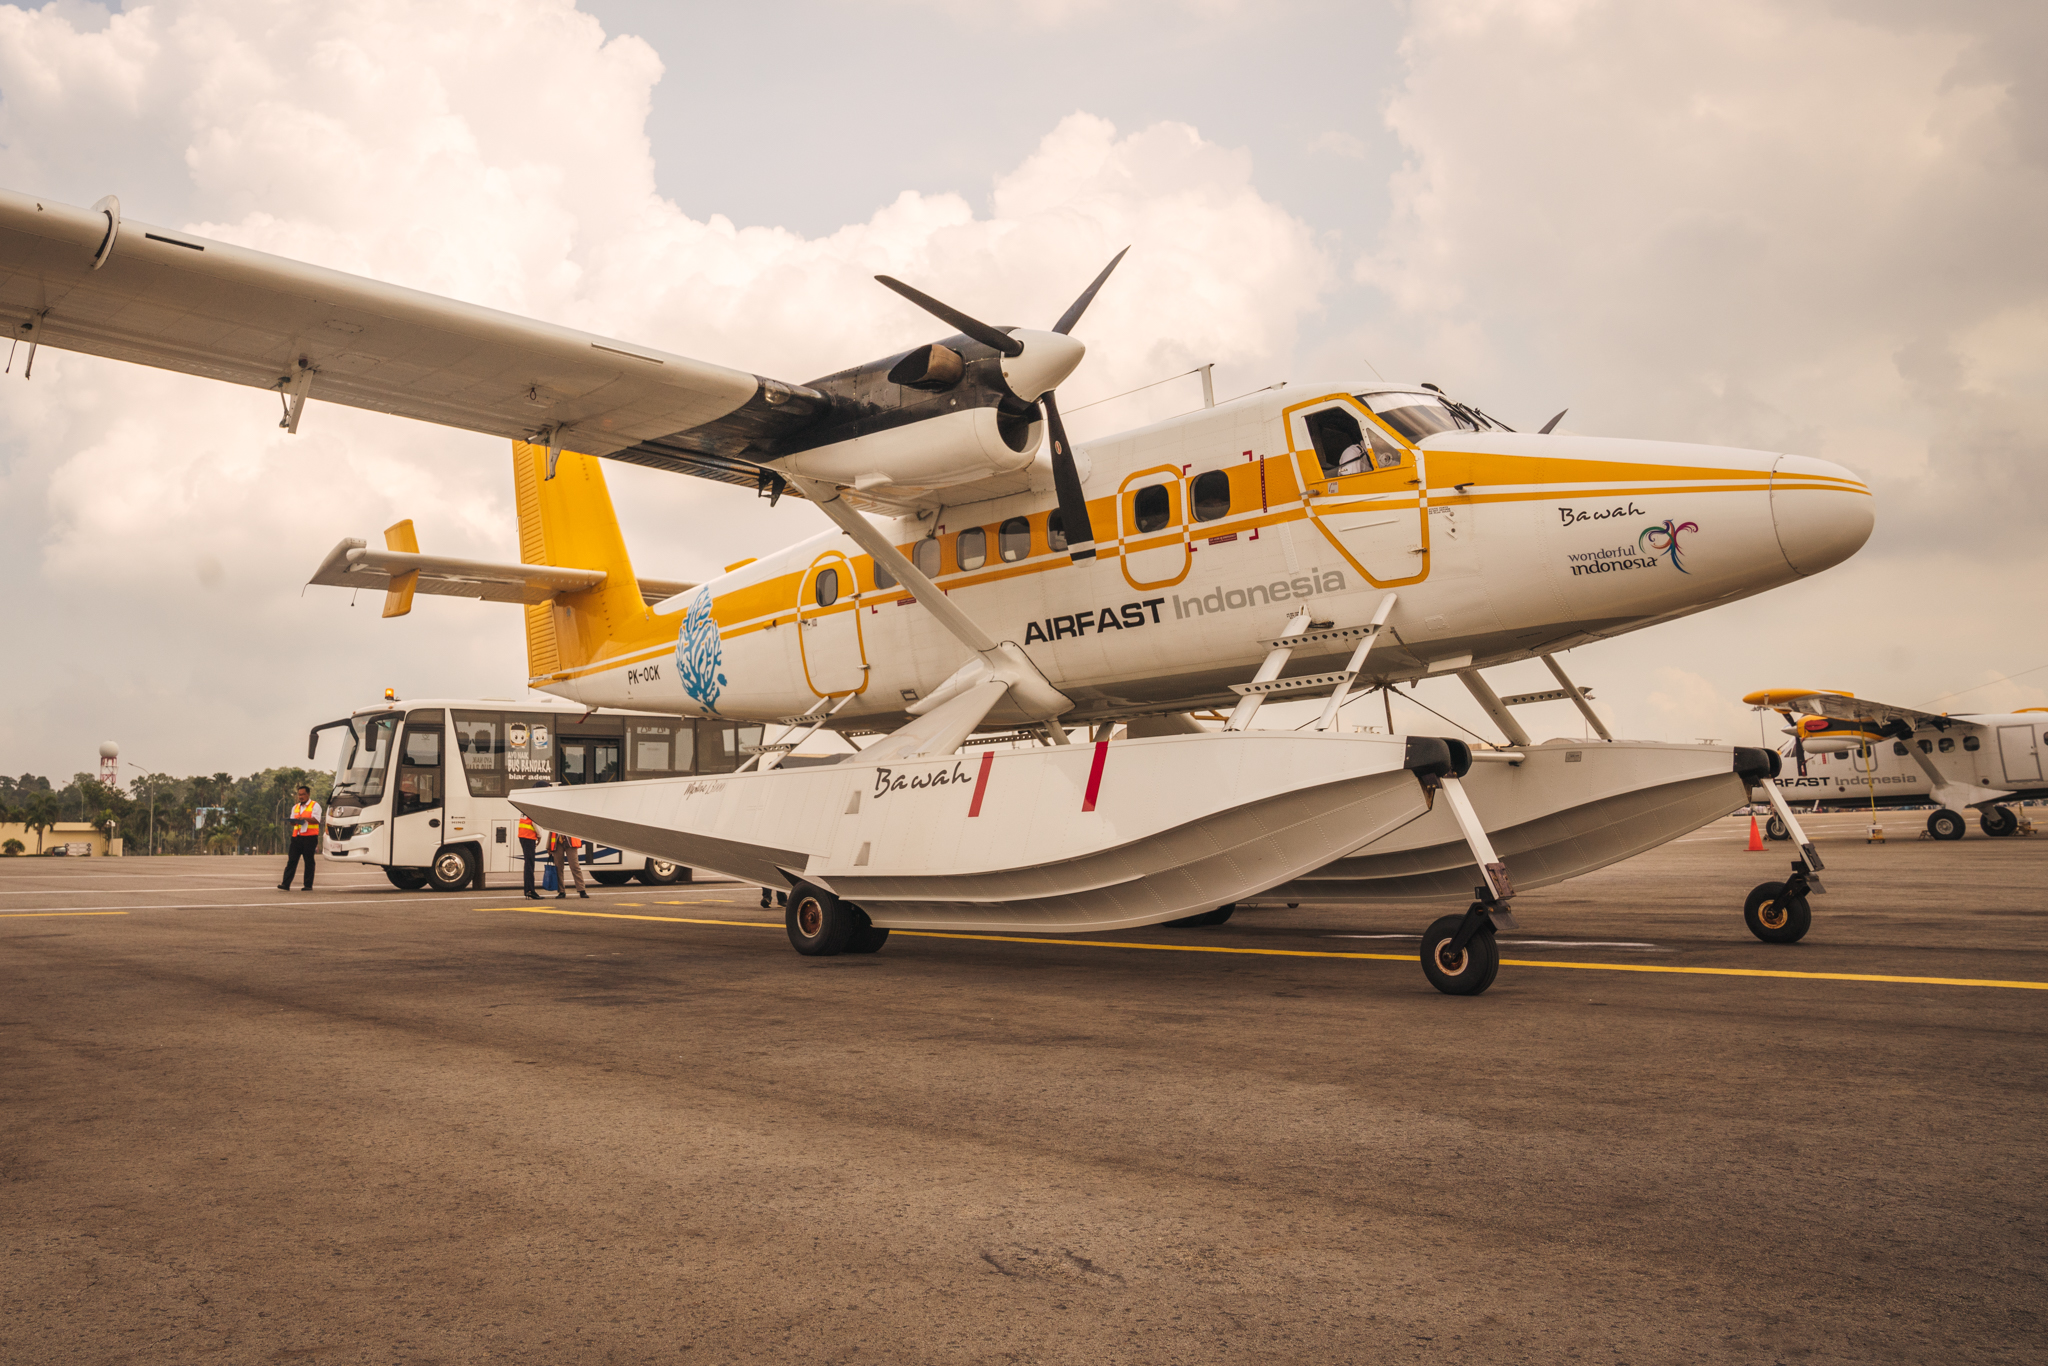 bawah_seaplane_stationed_in_batam_airport